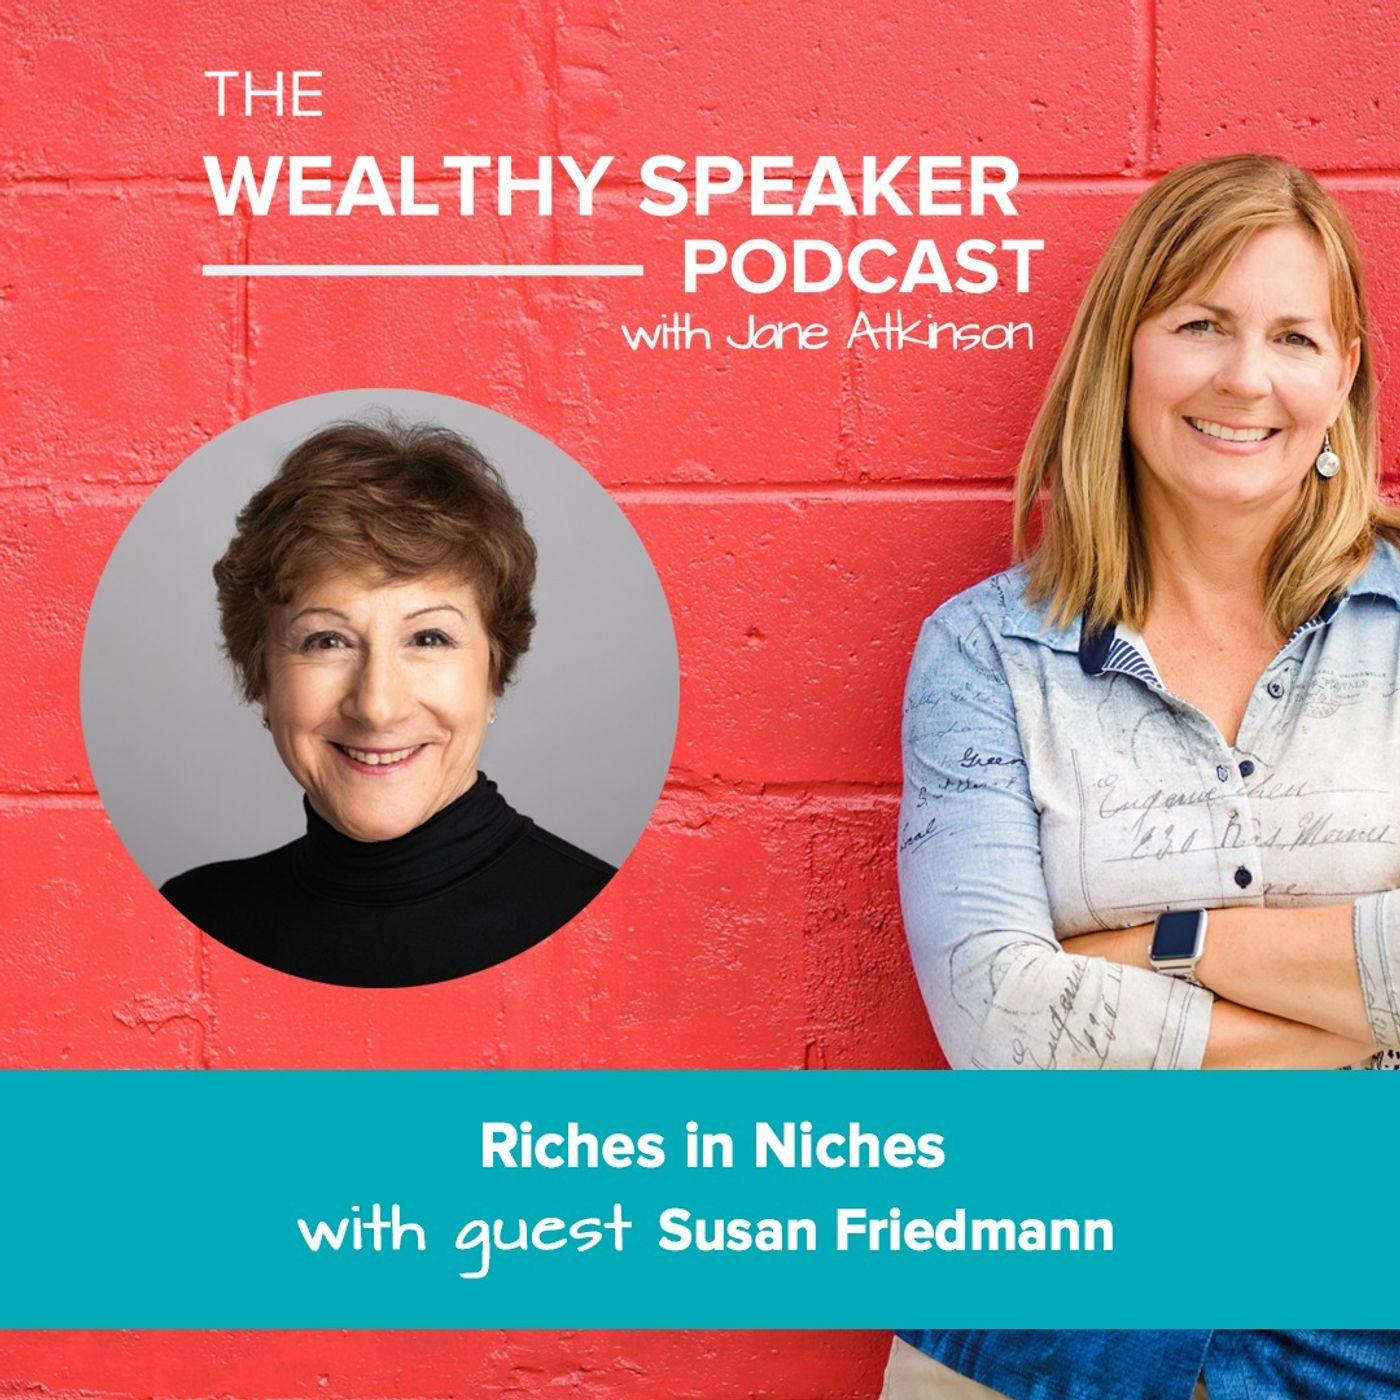 riches in niches with susan friedmann